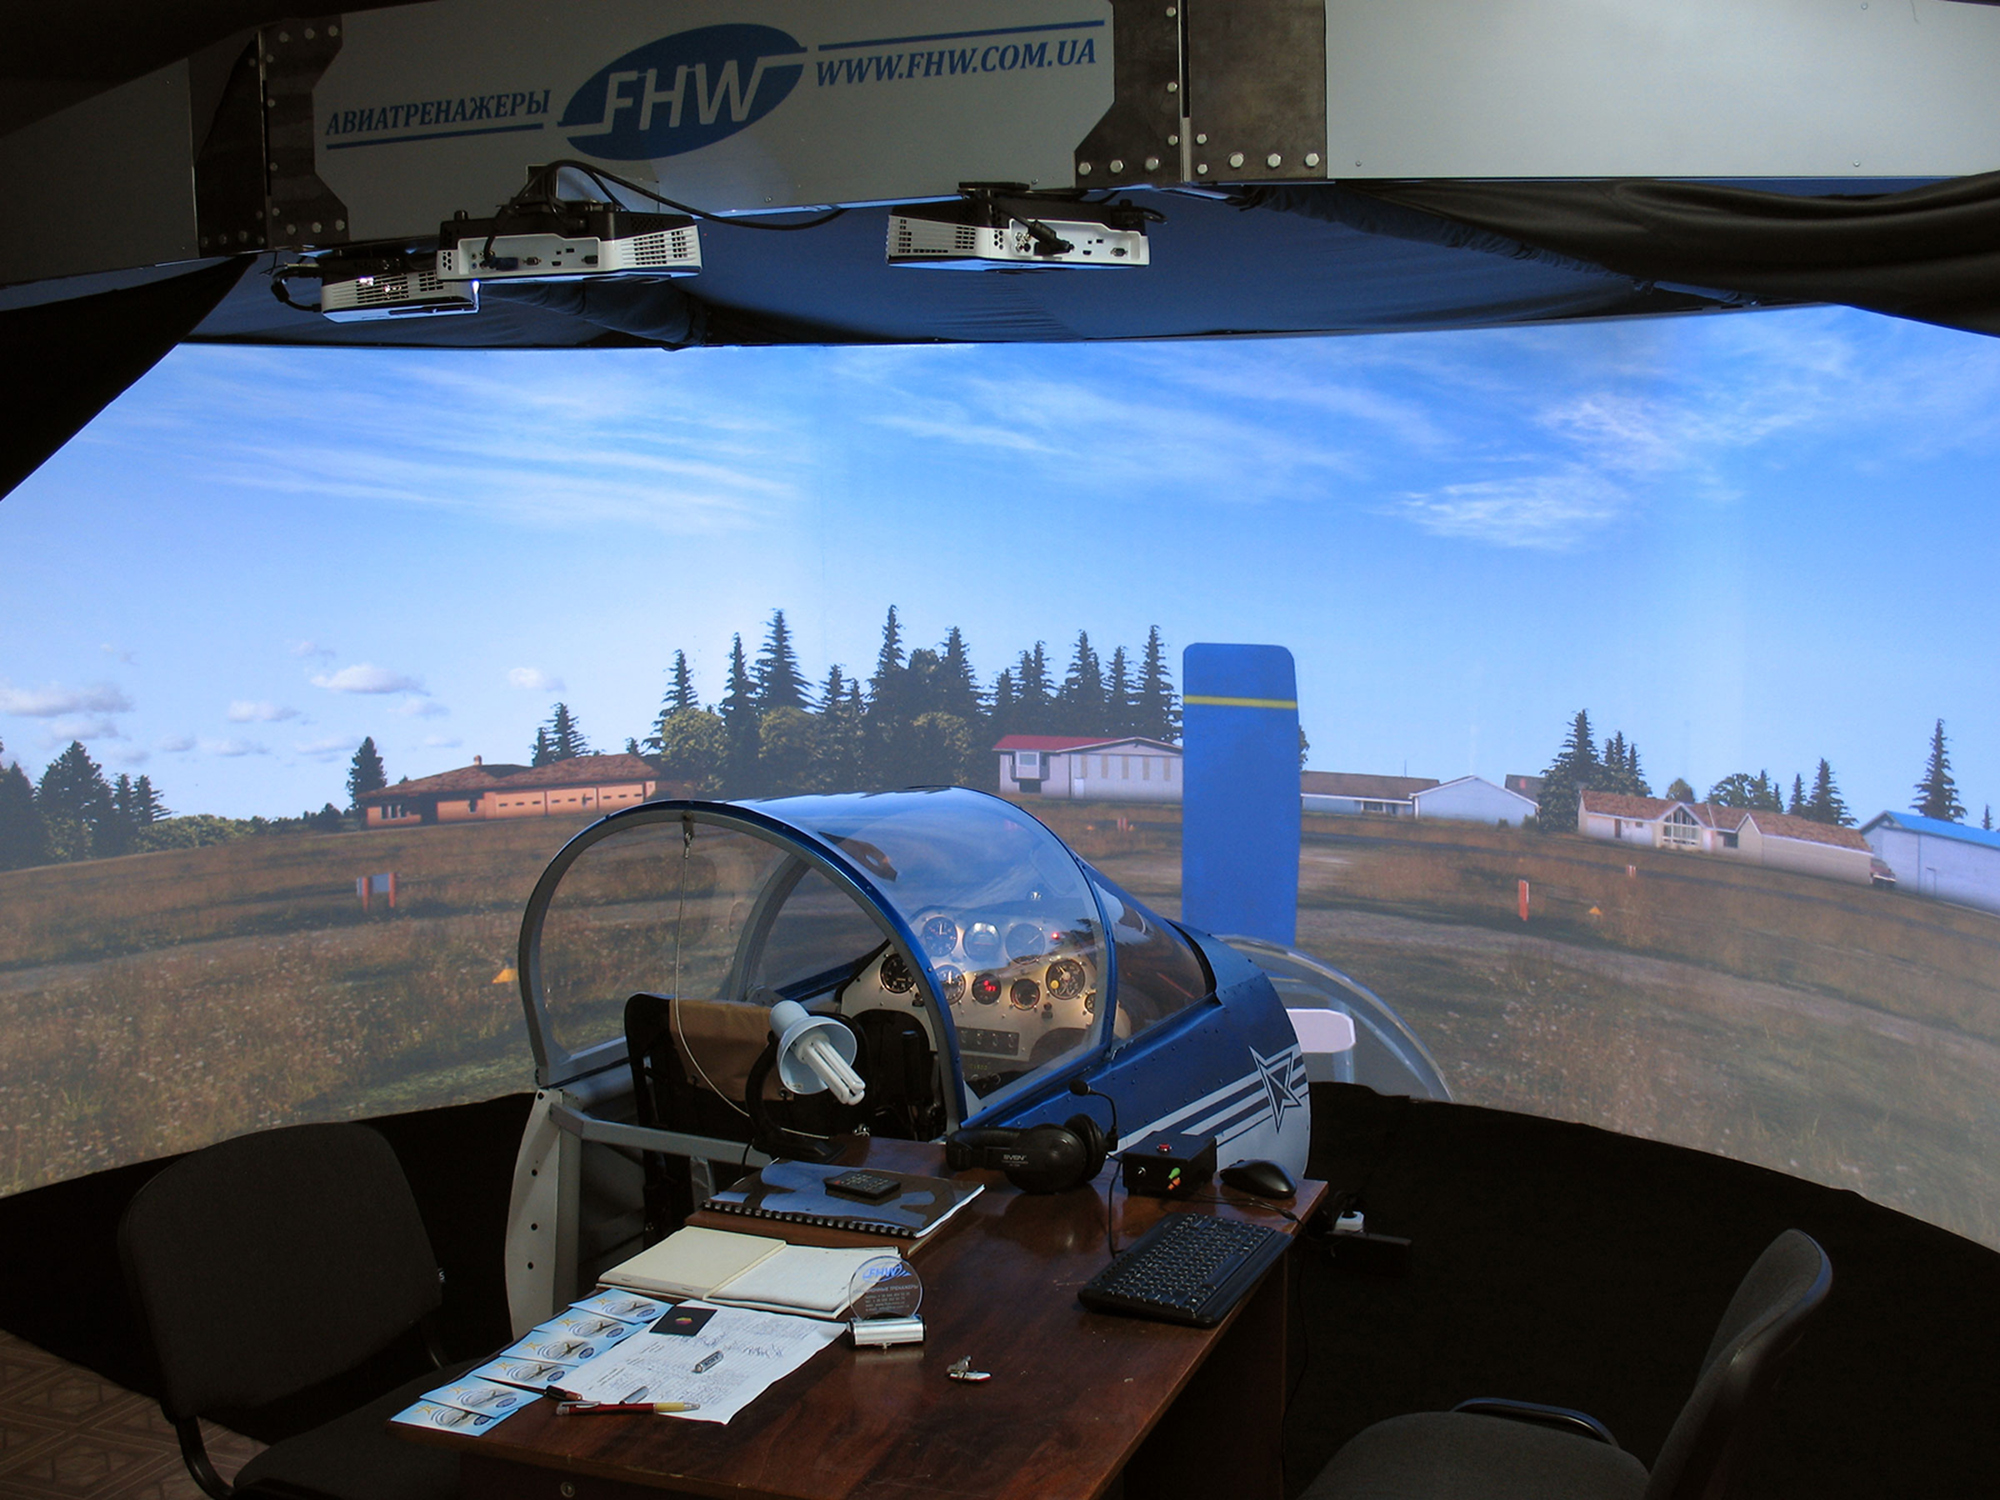 FHW's 3-channel visual display system with Su-26M aerobatic fligth trainer